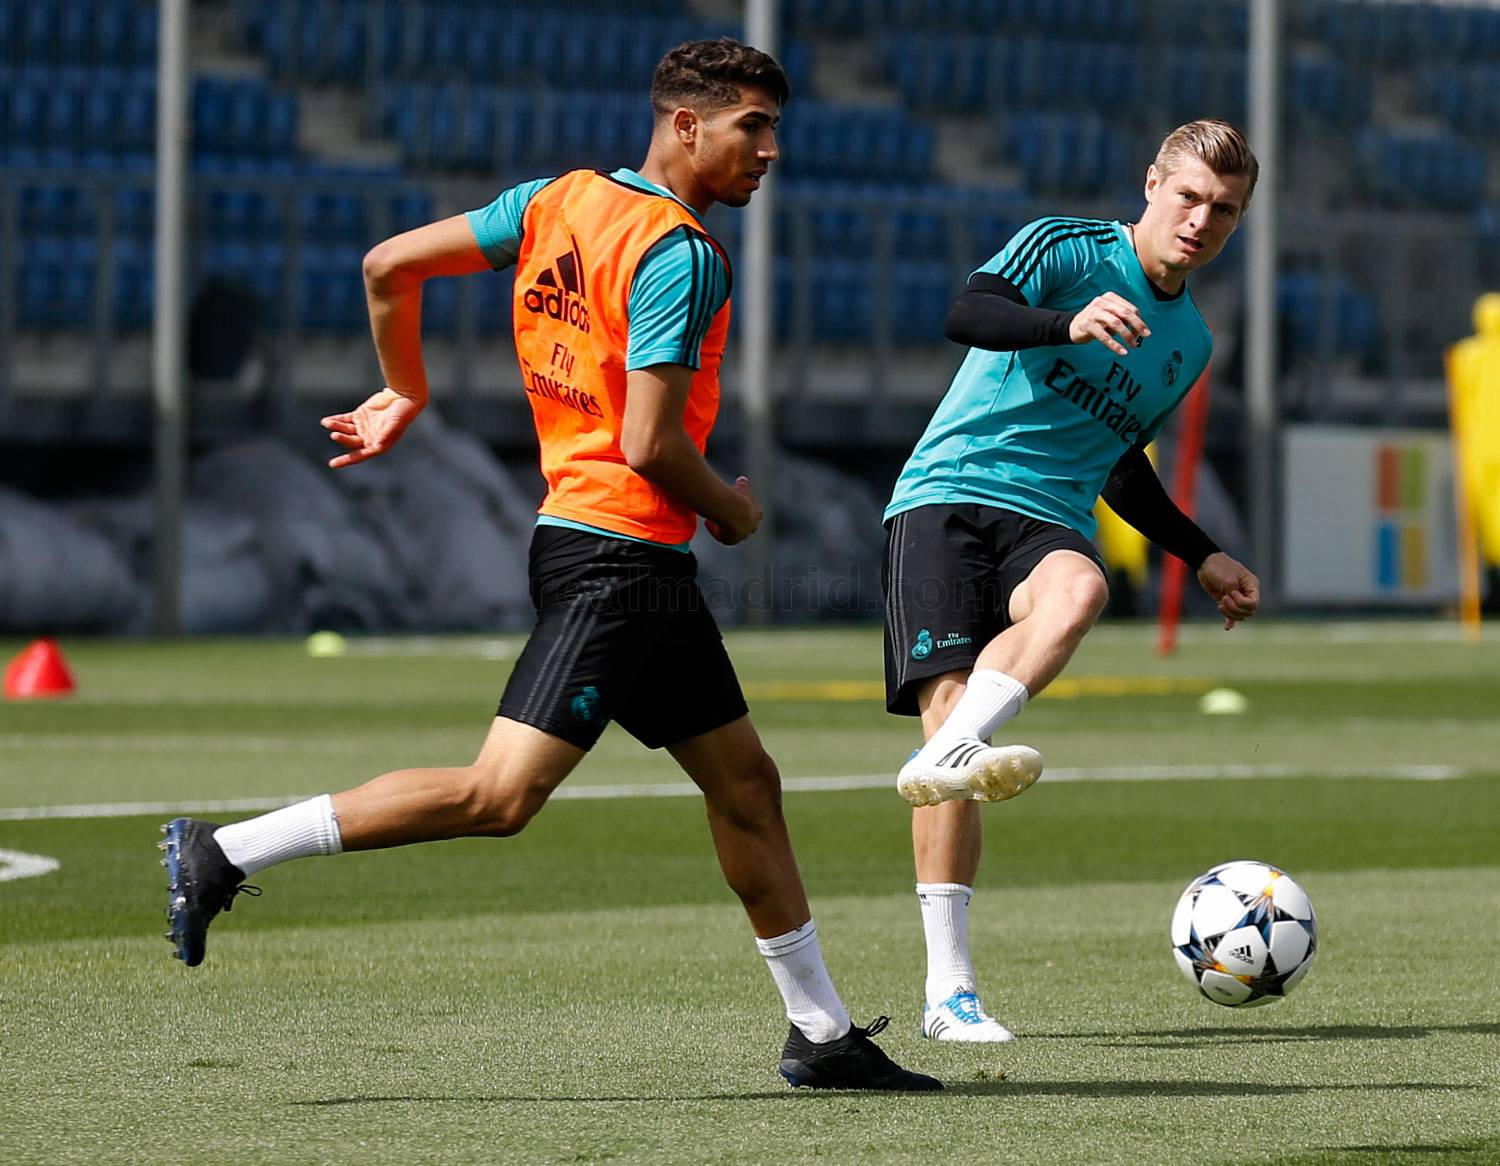 Real Madrid - Entrenamiento del Real Madrid - 22-04-2018